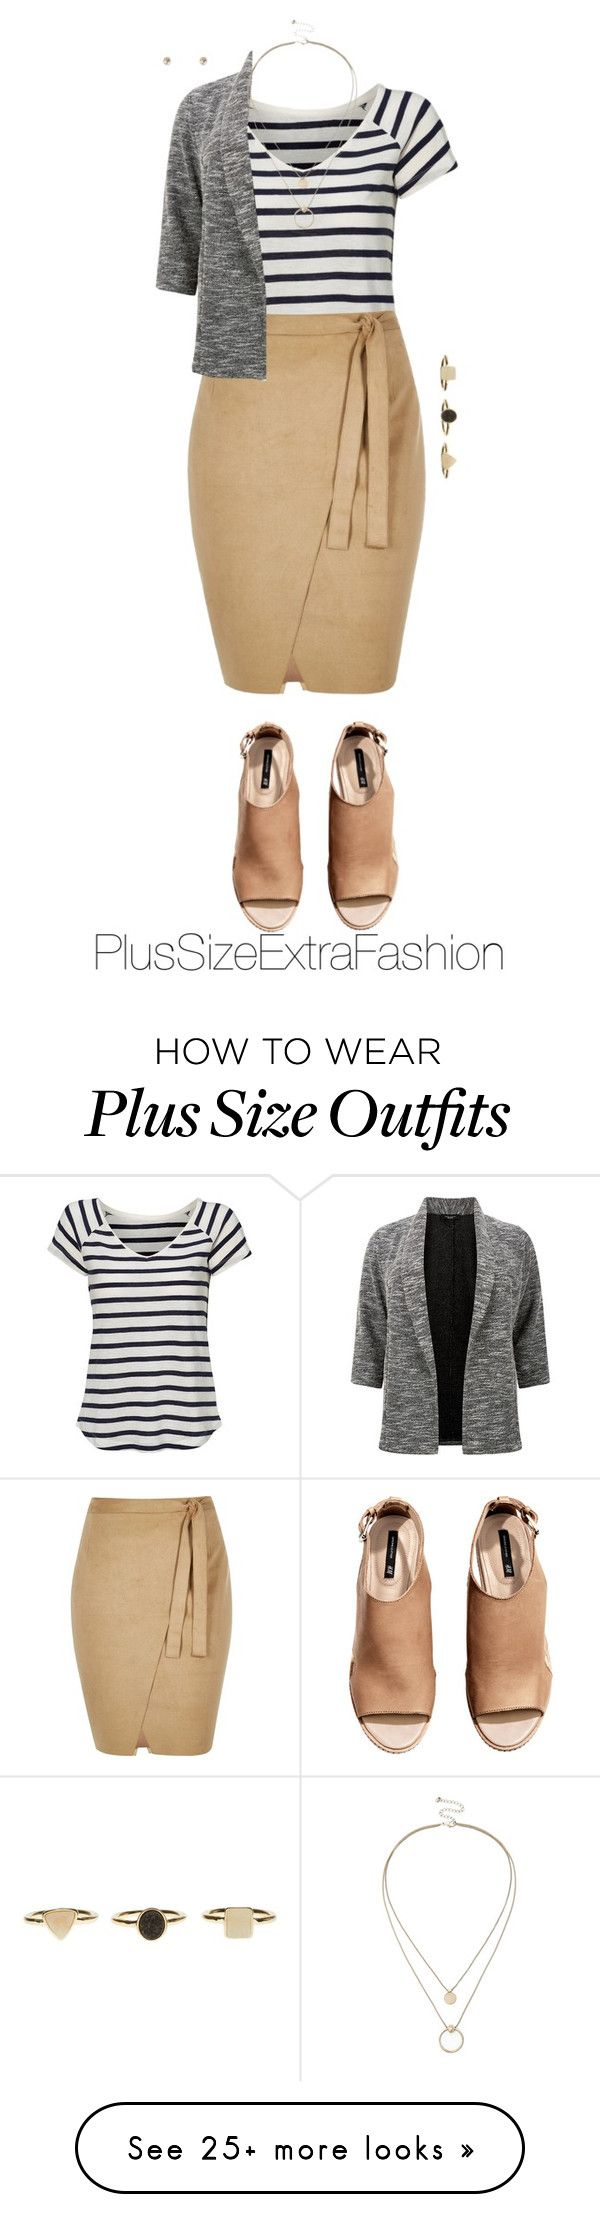 """""""Plus Size Spring Workwear ft. Wrap Skirt and Stripes"""" by plussizeextrafashion on Polyvore featuring Jessica London, River Island, H&M, Sole Society, Forever 21, WorkWear, plussize, spring2016 and plussizeextrafashion"""